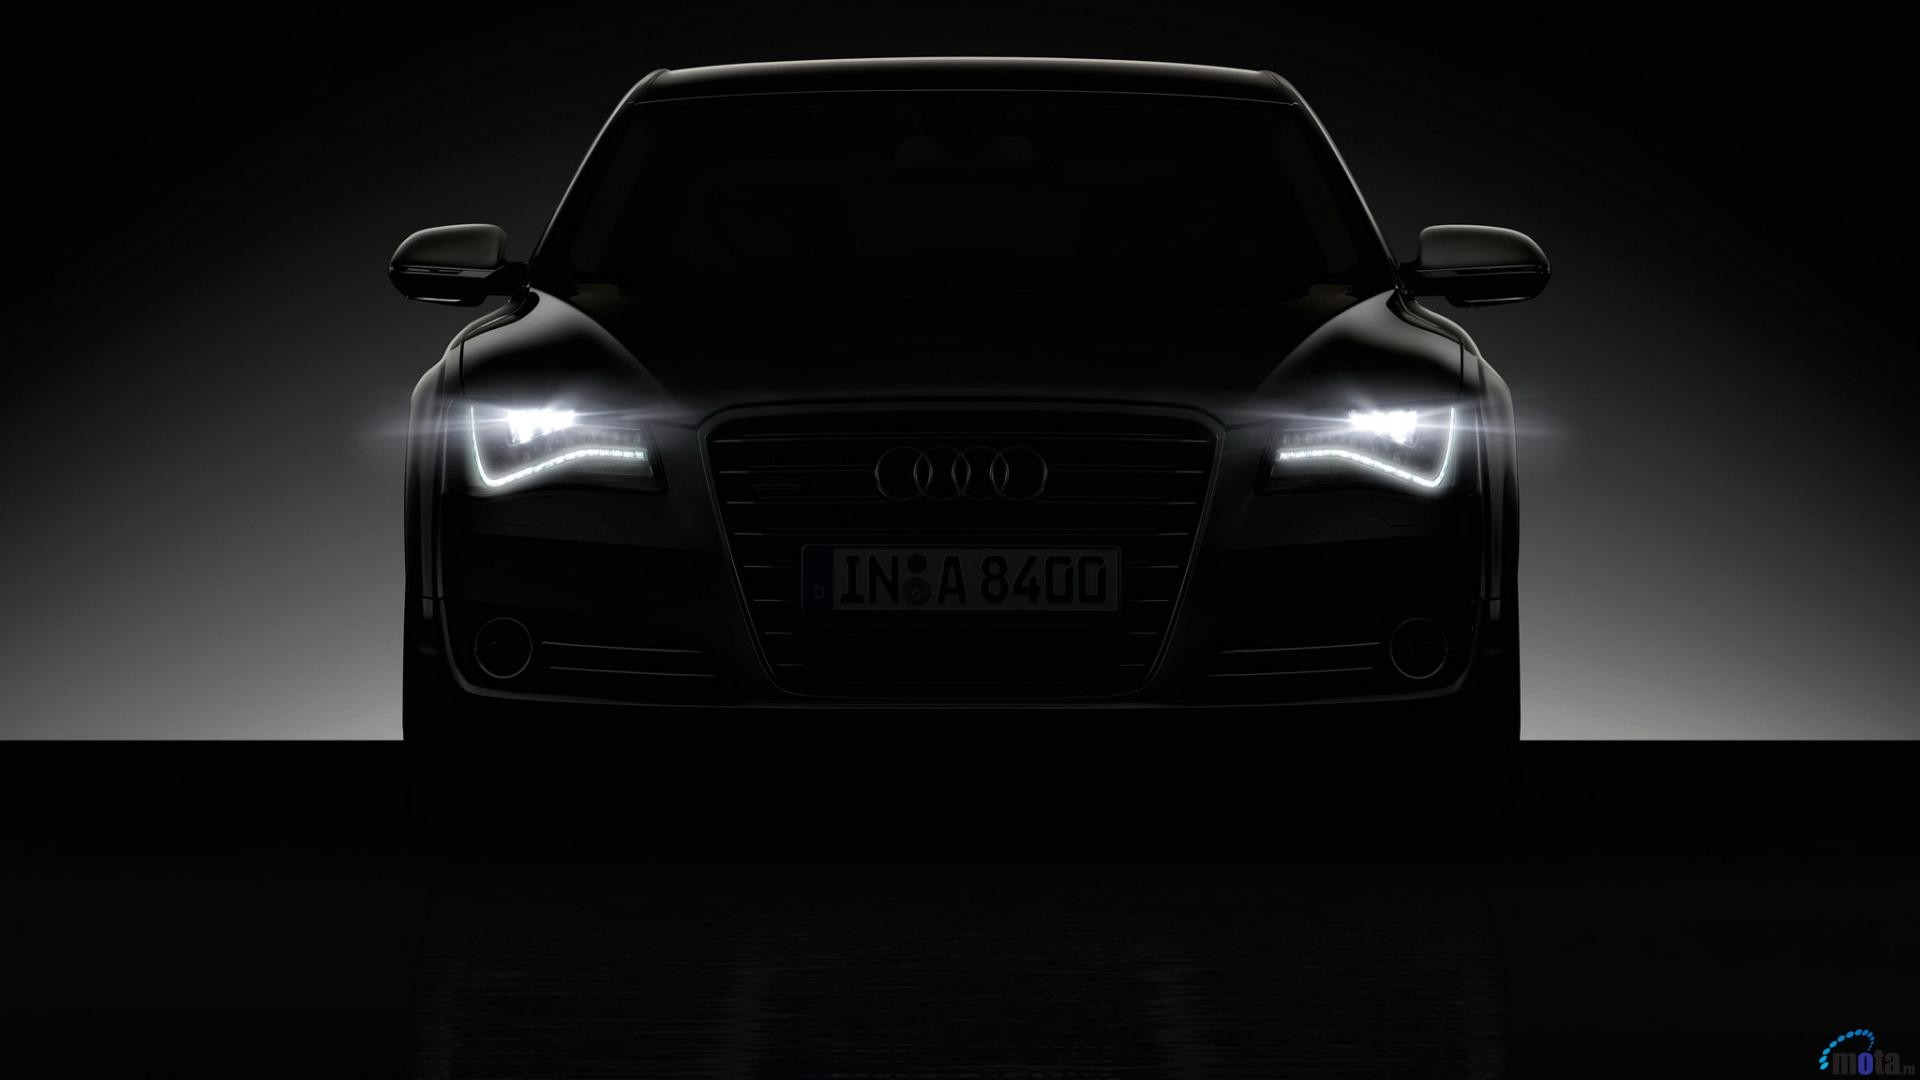 1920x1080 Download Wallpaper Audi A8 In The Dark 1920 X 1080 Hdtv 1080p audi a8  wallpapers